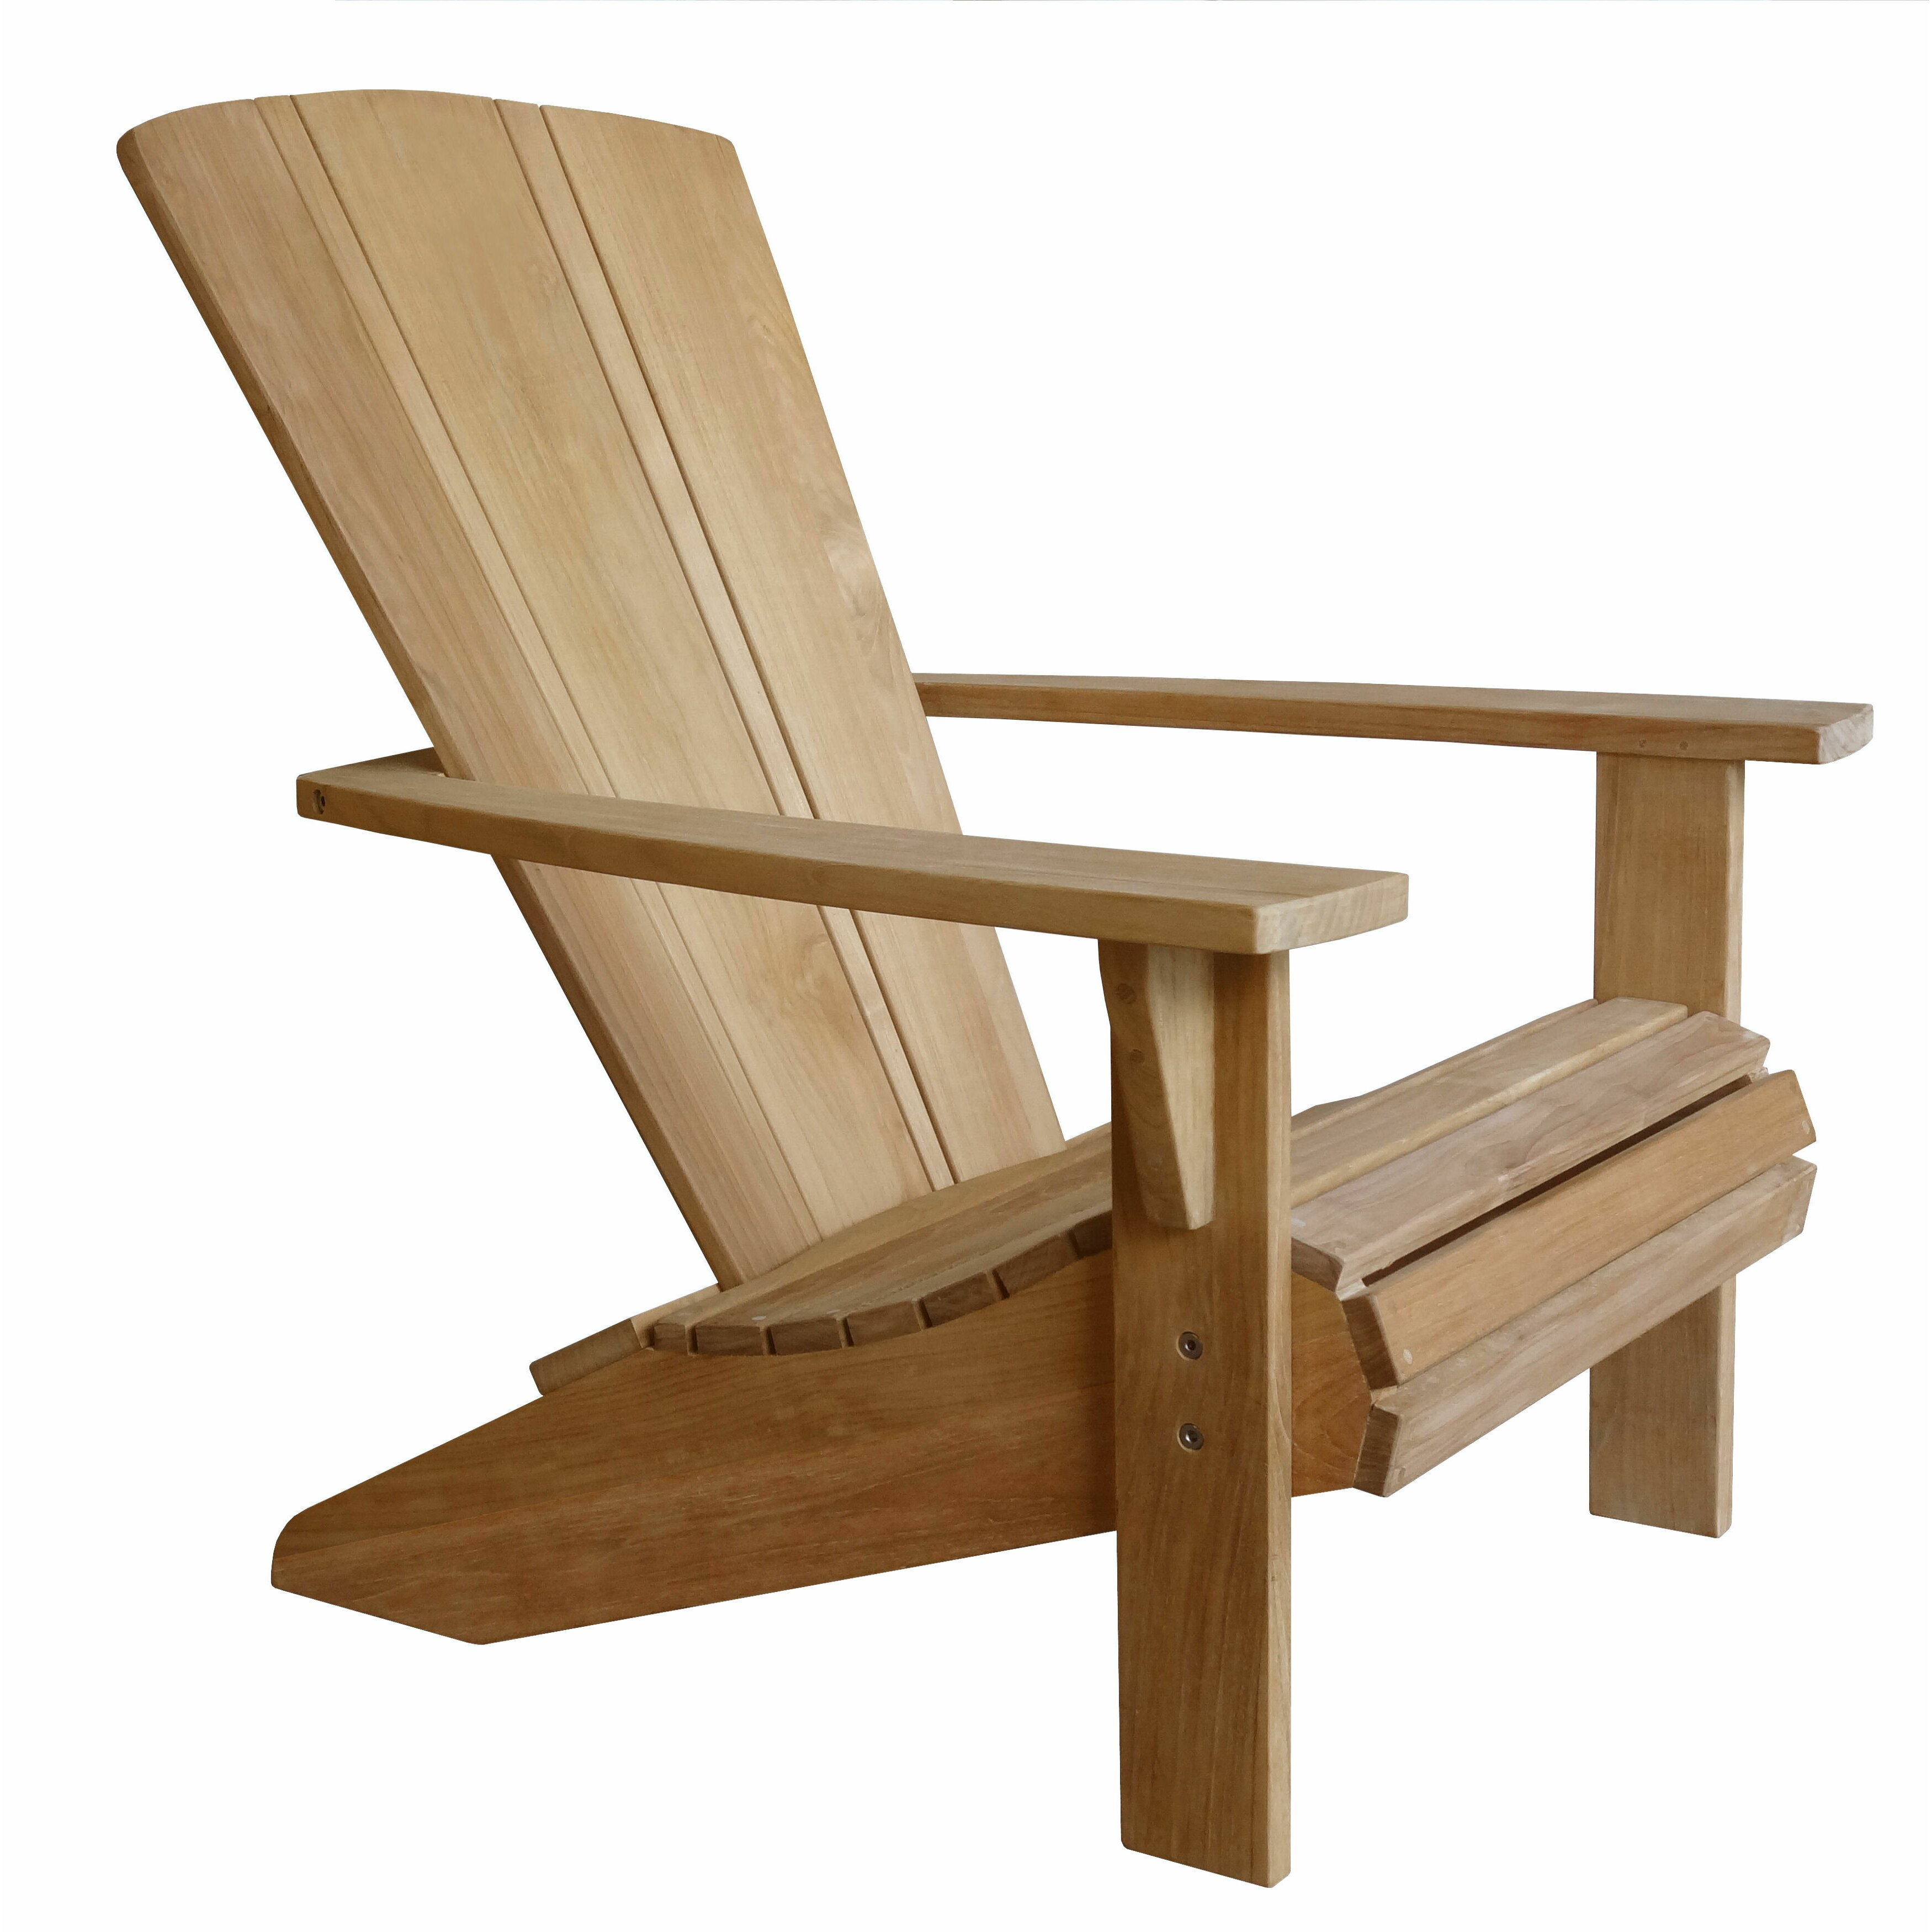 Douglas Nance Santa Fe Adirondack Chair Wayfair